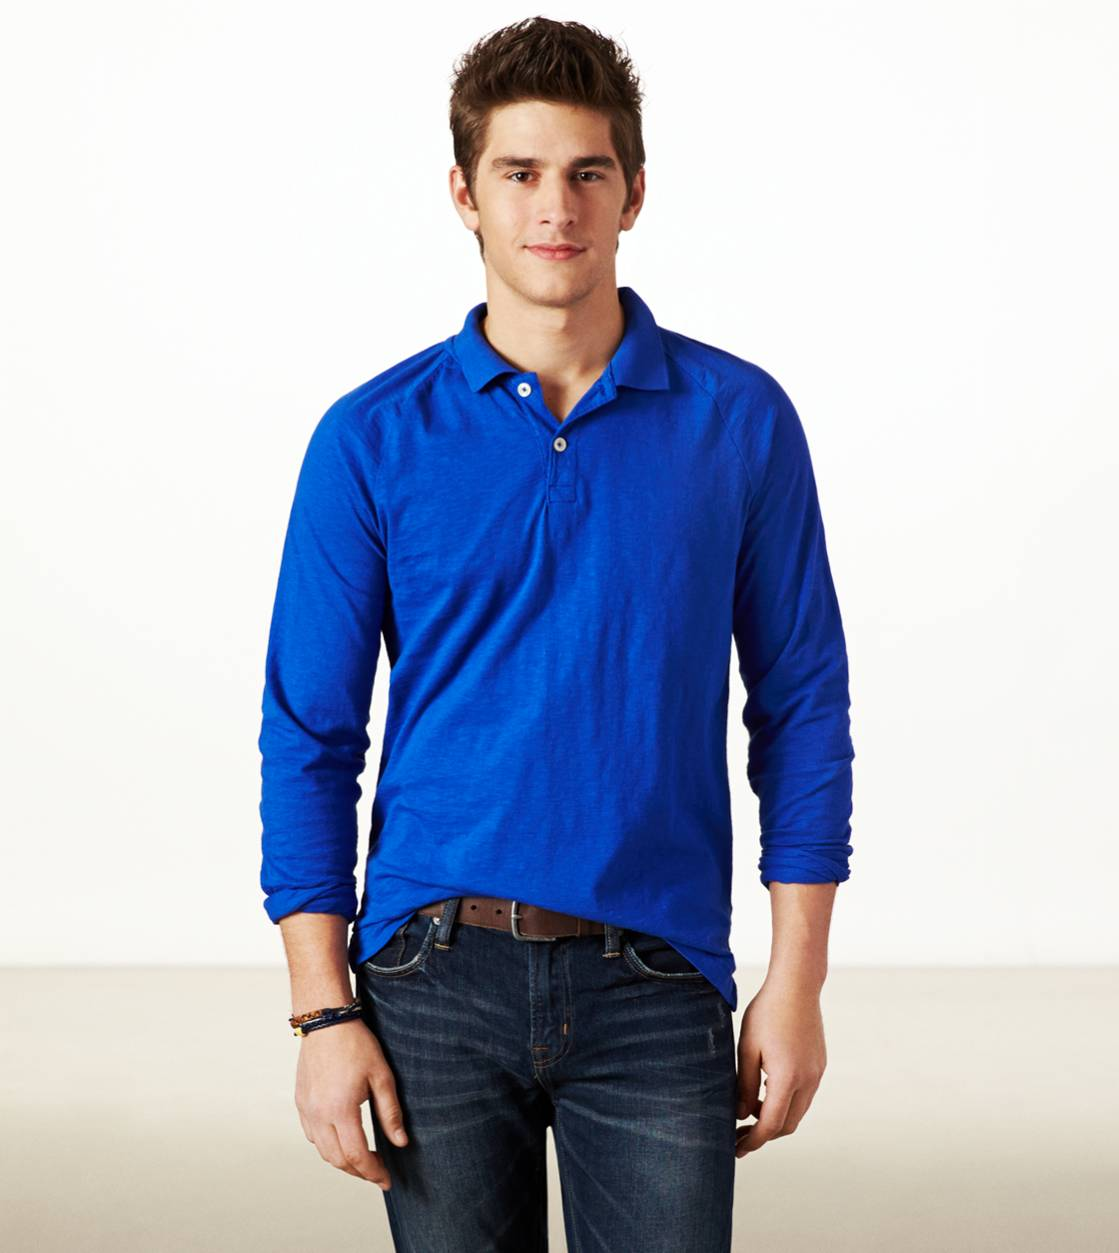 Cobalt Blue AE Long Sleeve Polo